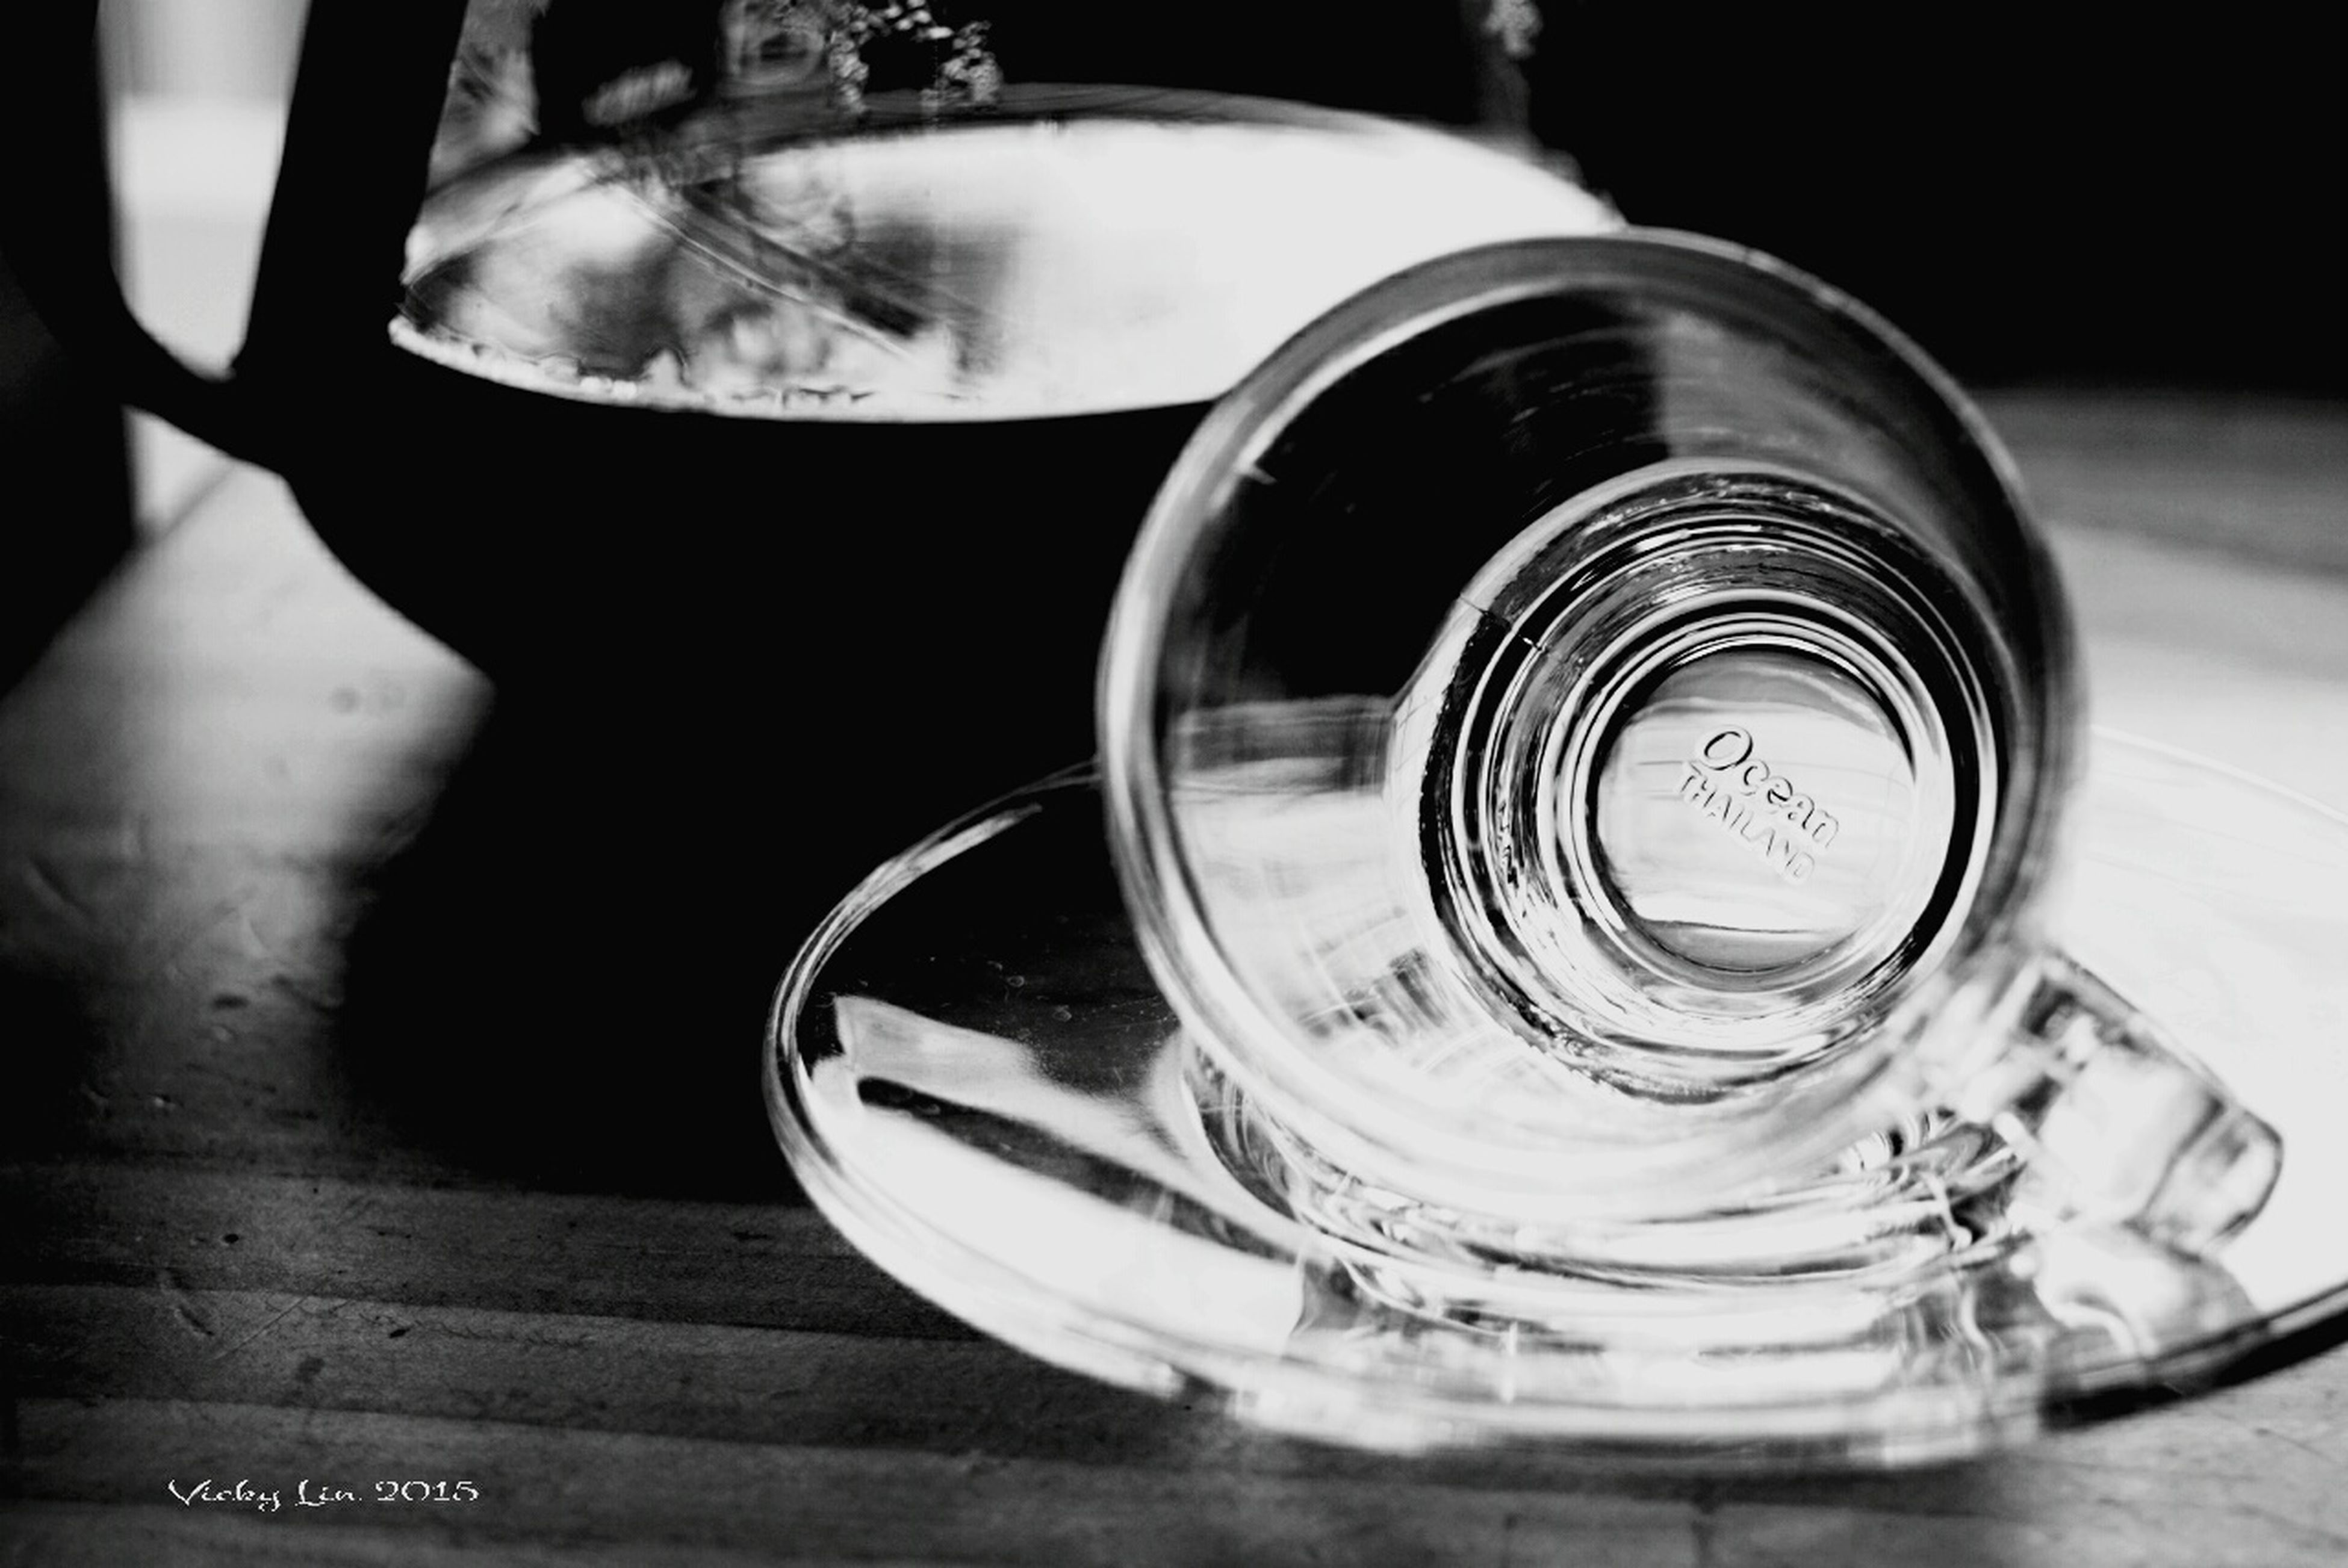 indoors, close-up, table, drink, refreshment, still life, focus on foreground, glass - material, reflection, drinking glass, transparent, water, no people, wineglass, high angle view, food and drink, glass, selective focus, freshness, shiny